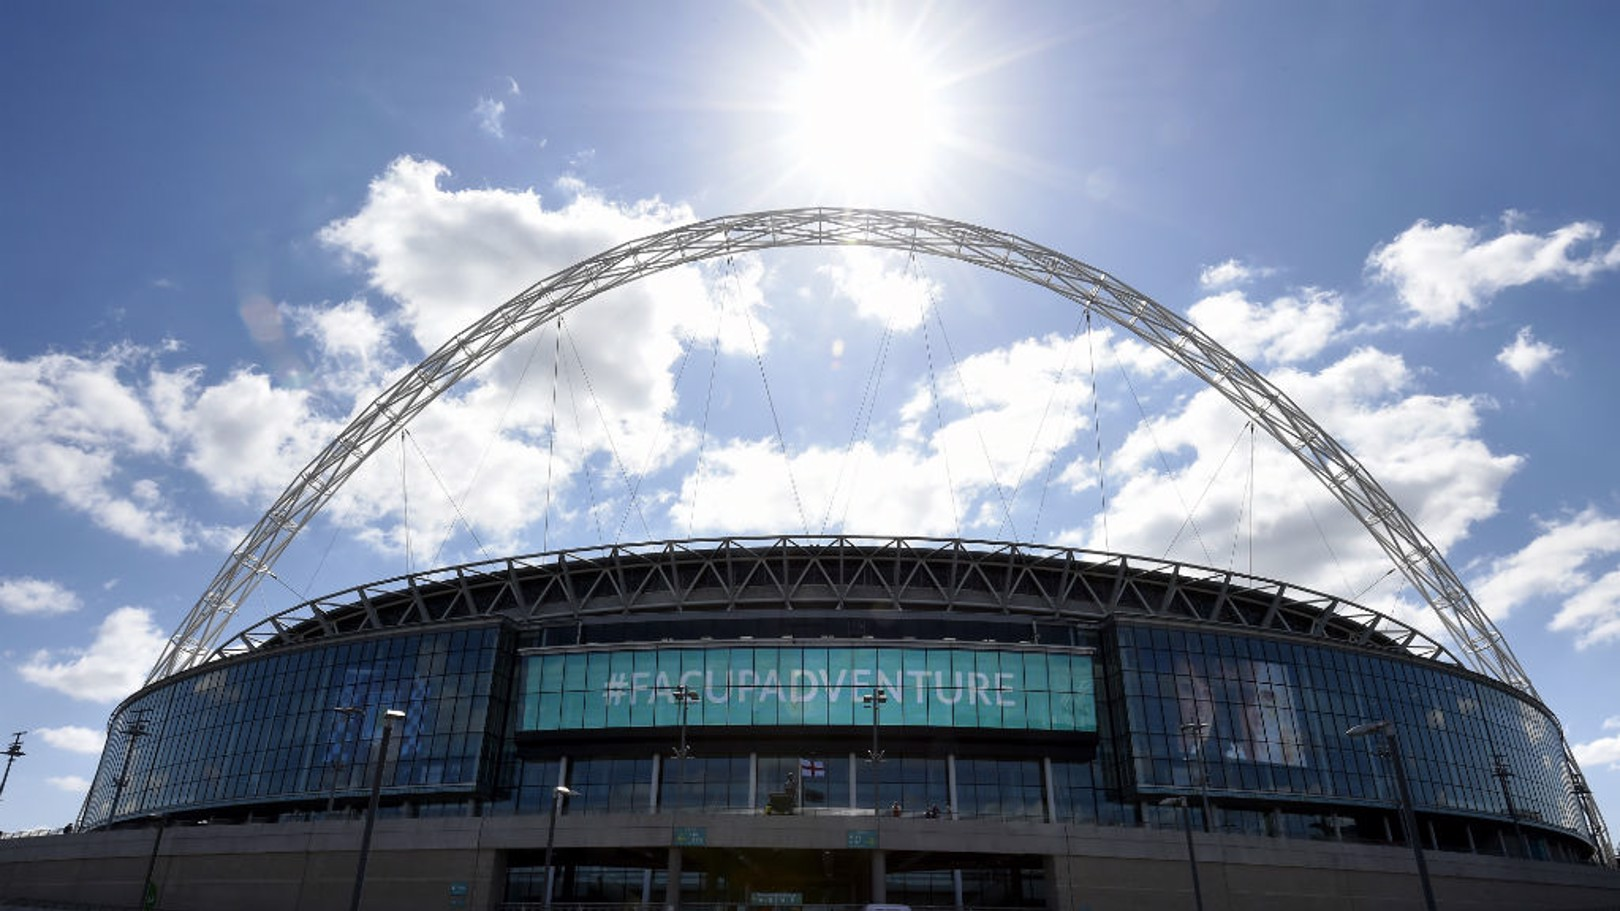 CARABAO CUP: Important information for supporters travelling to the game by train